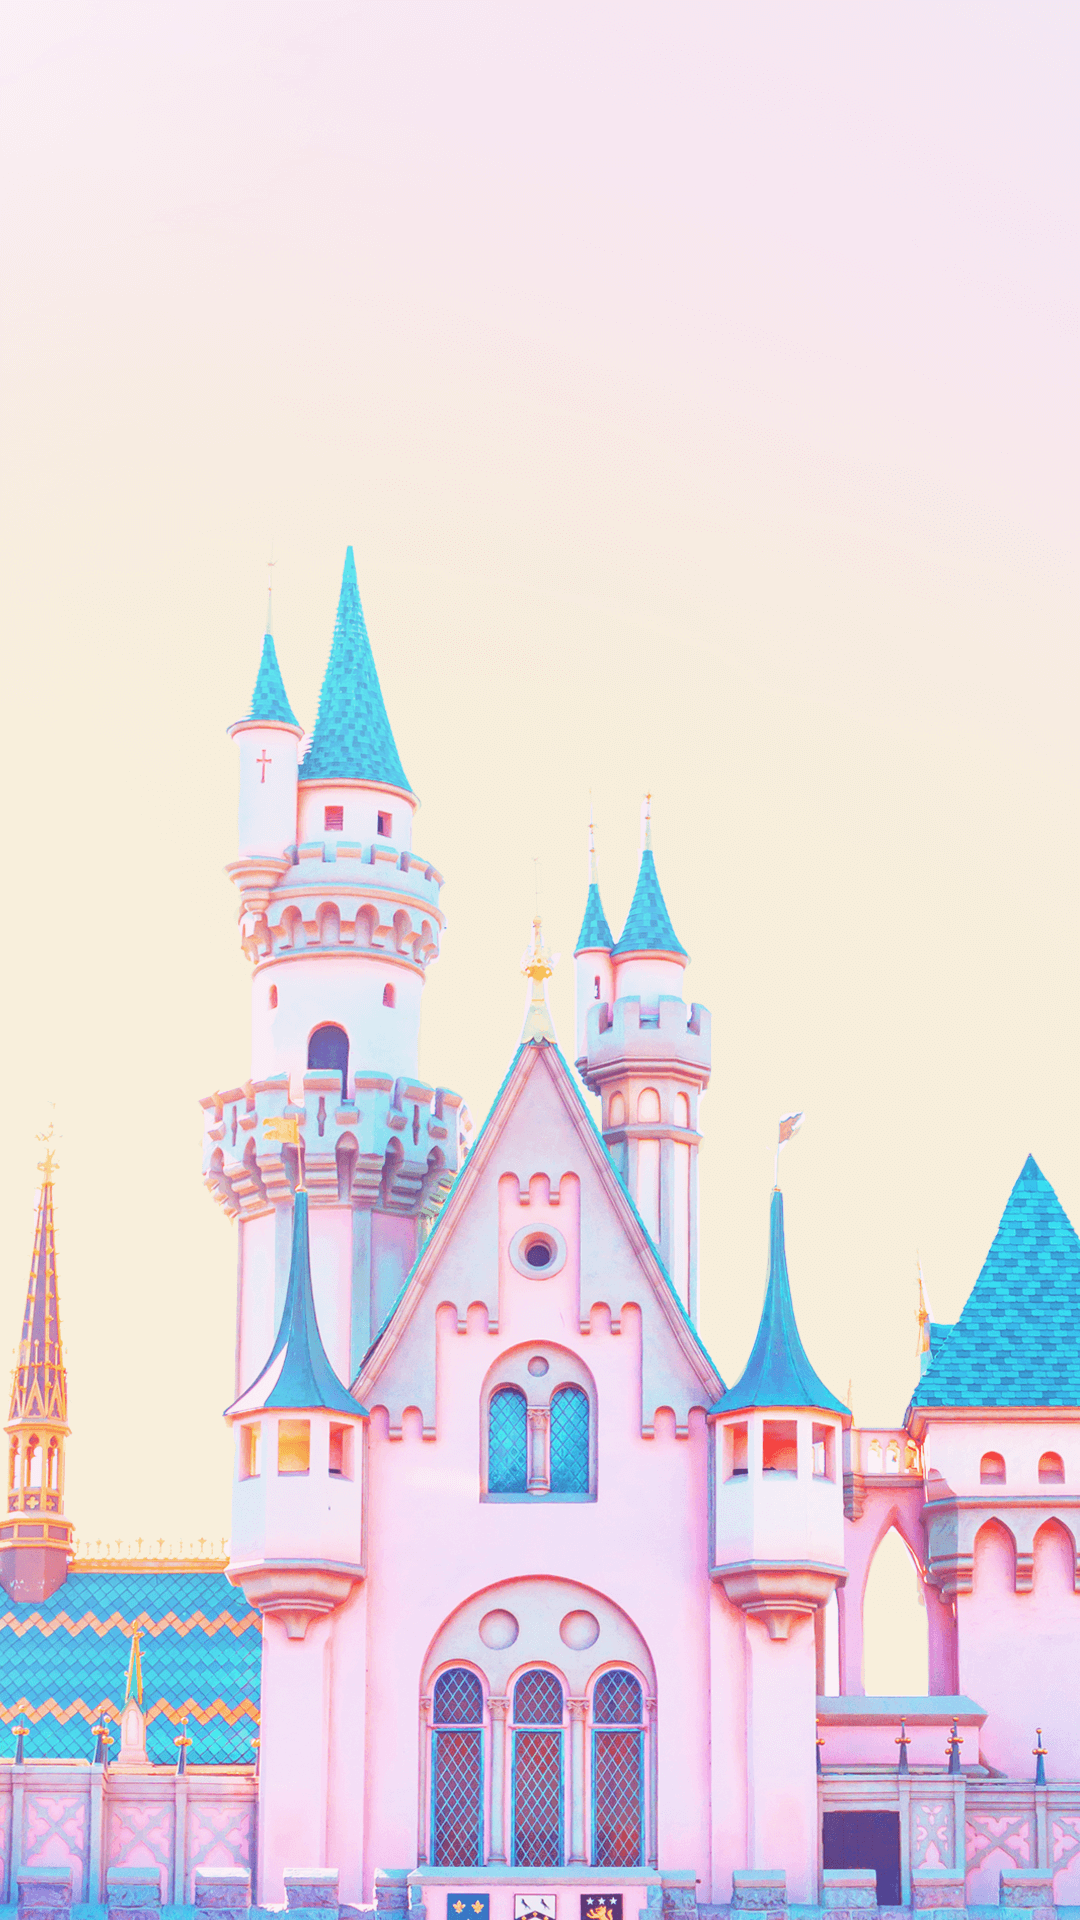 8 Disneyland Mobile Wallpapers Wallpaper Freebies Disney